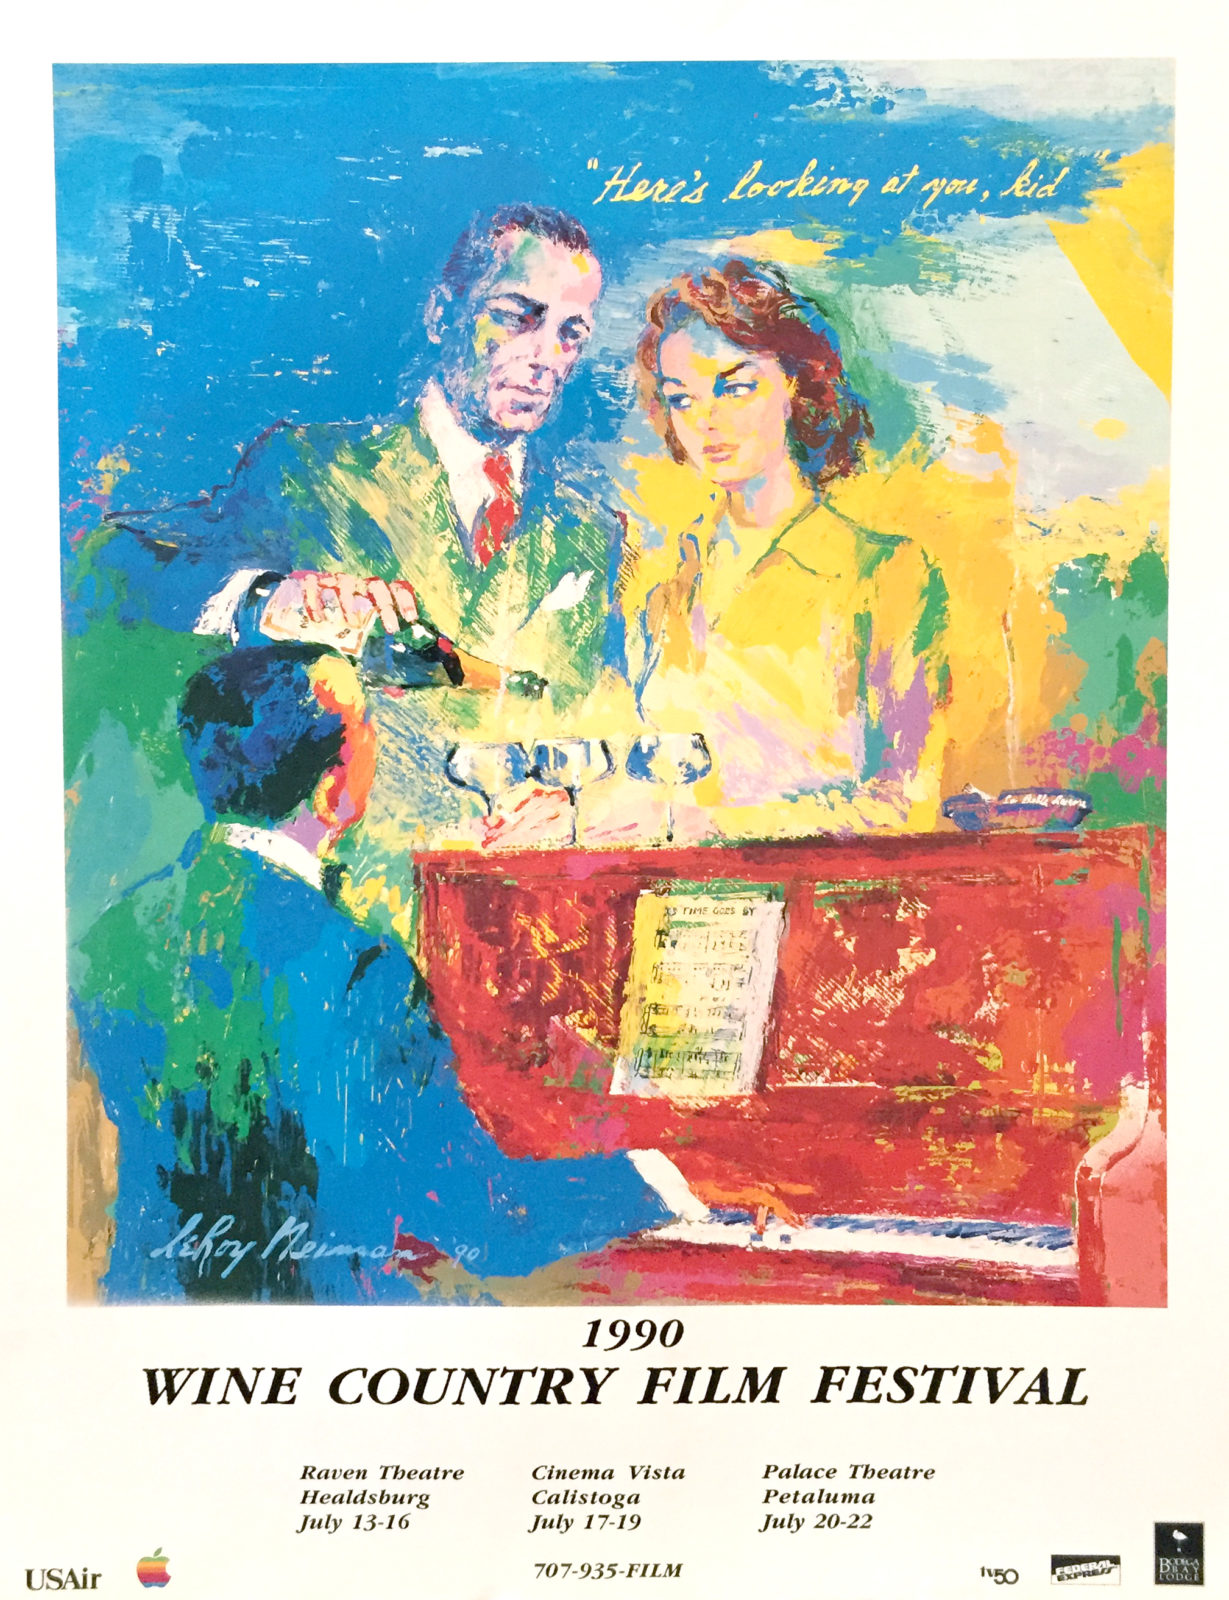 Wine Country Film Festival 1990 poster